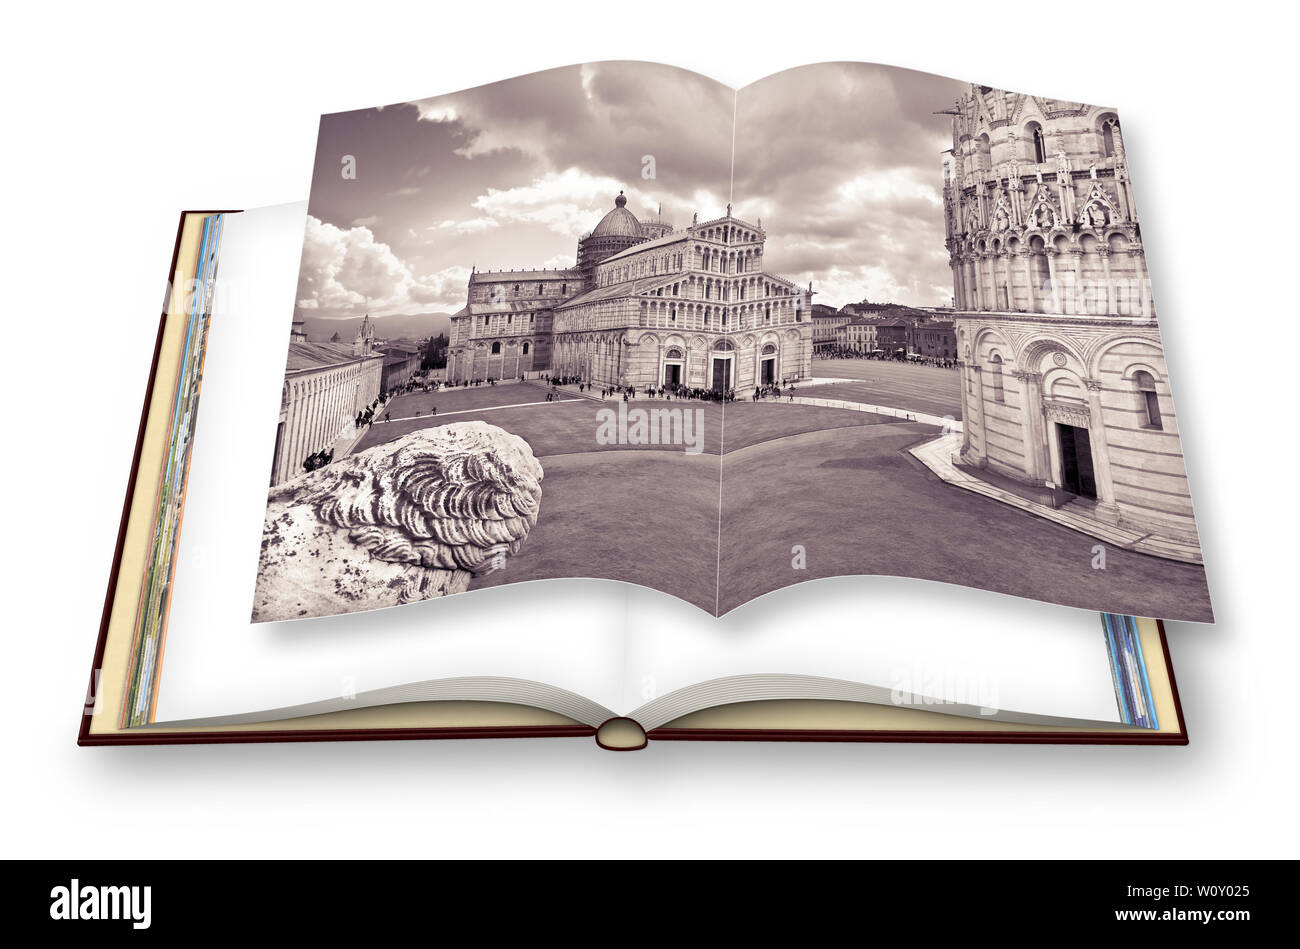 Opened photo book of the famous italian square called 'The square of Miracles photographed from an unusual point of view. - I'm the copyright owner of - Stock Image